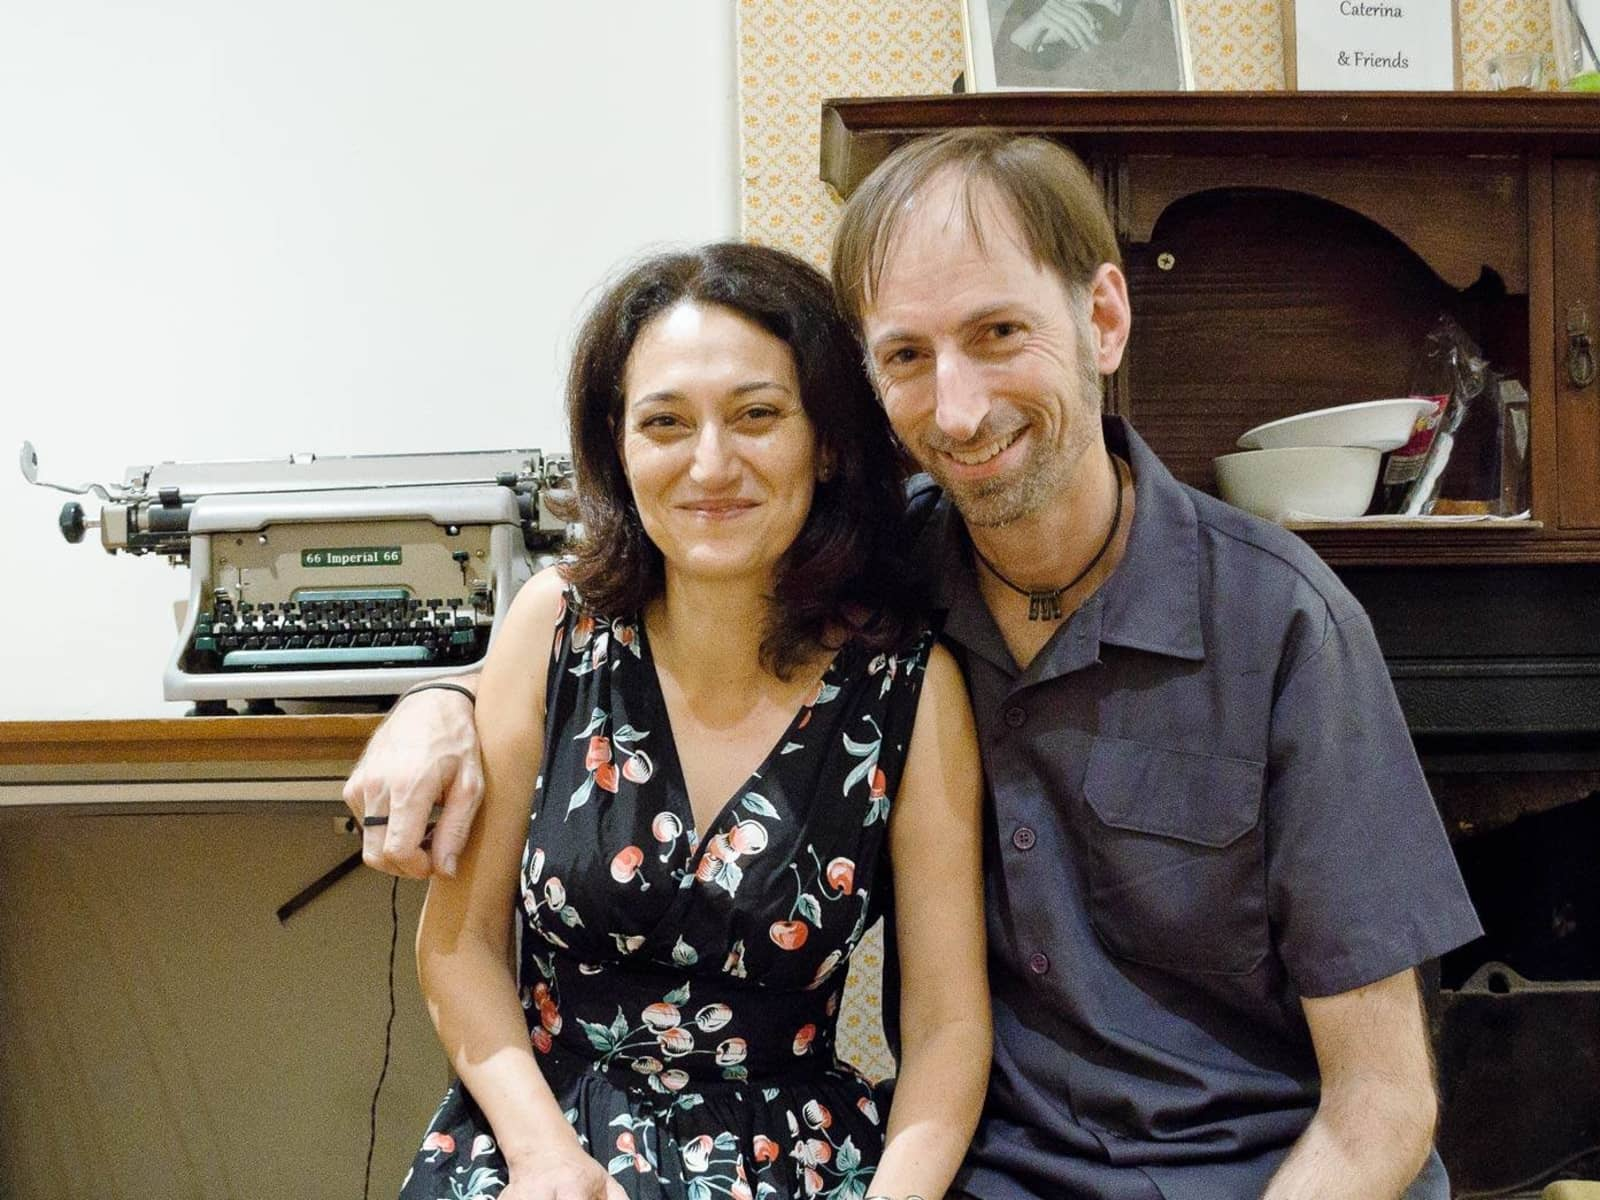 Caterina & Mike from Sydney, New South Wales, Australia